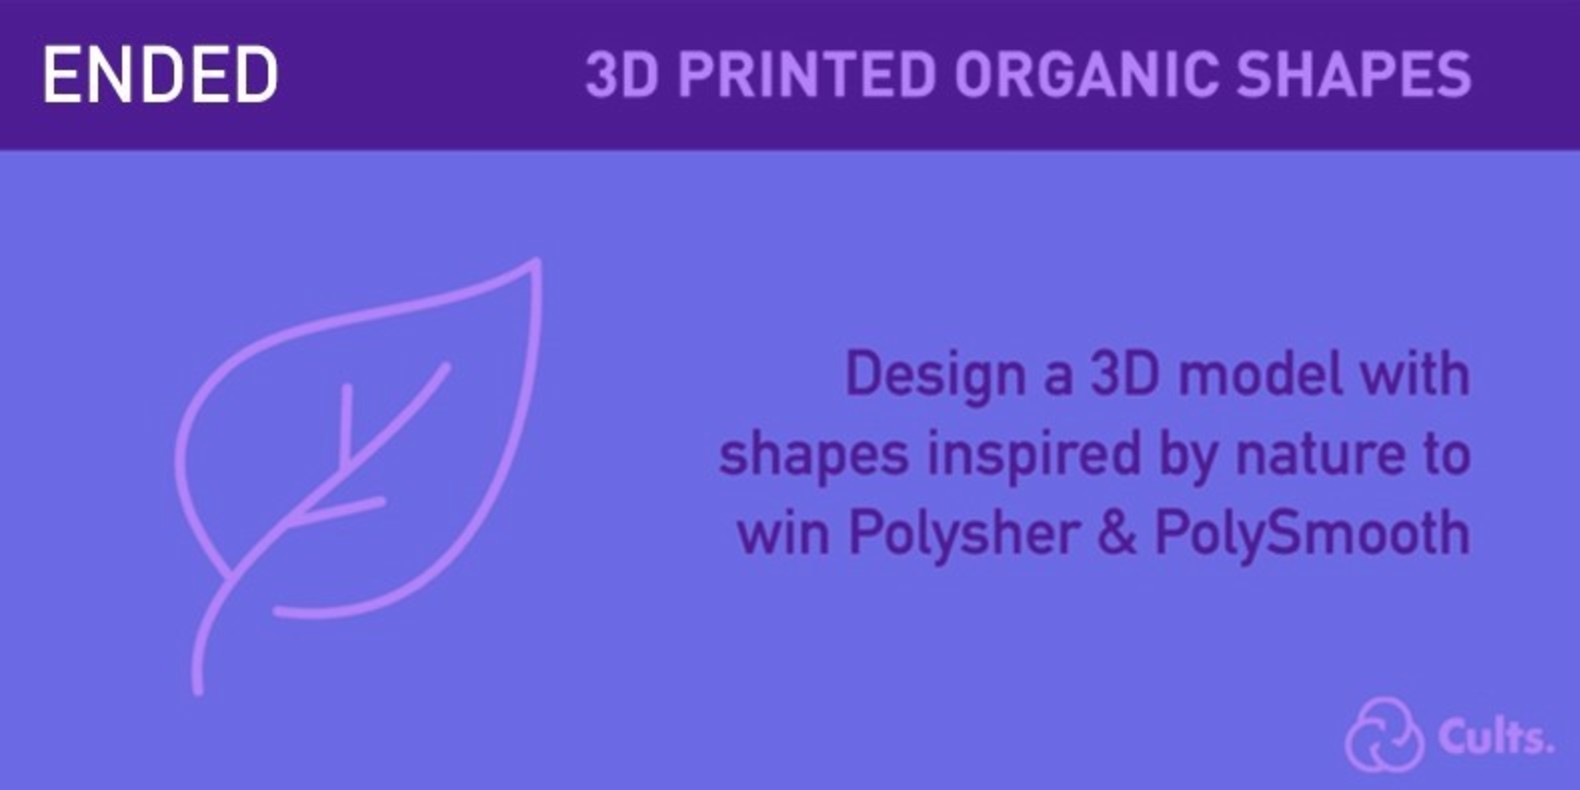 The challenge of design and 3D printing about Organic Shapes